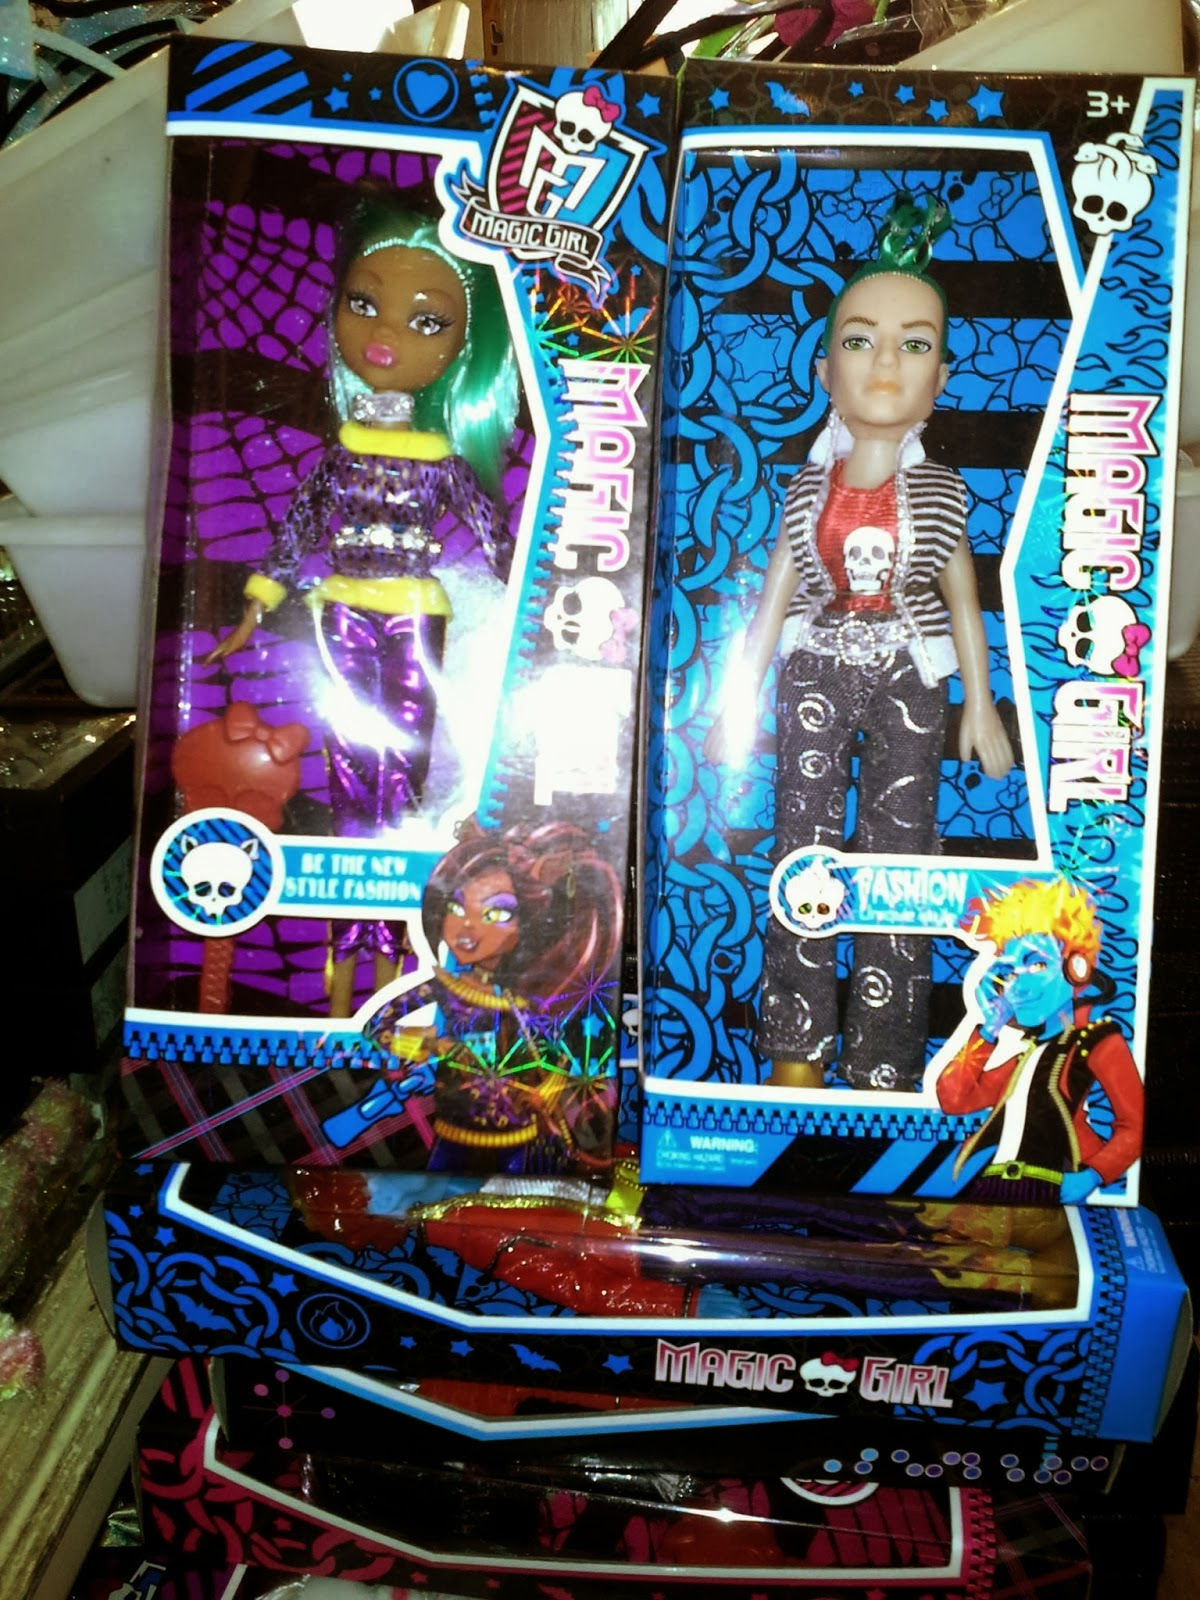 Magic Girl (Monster High)